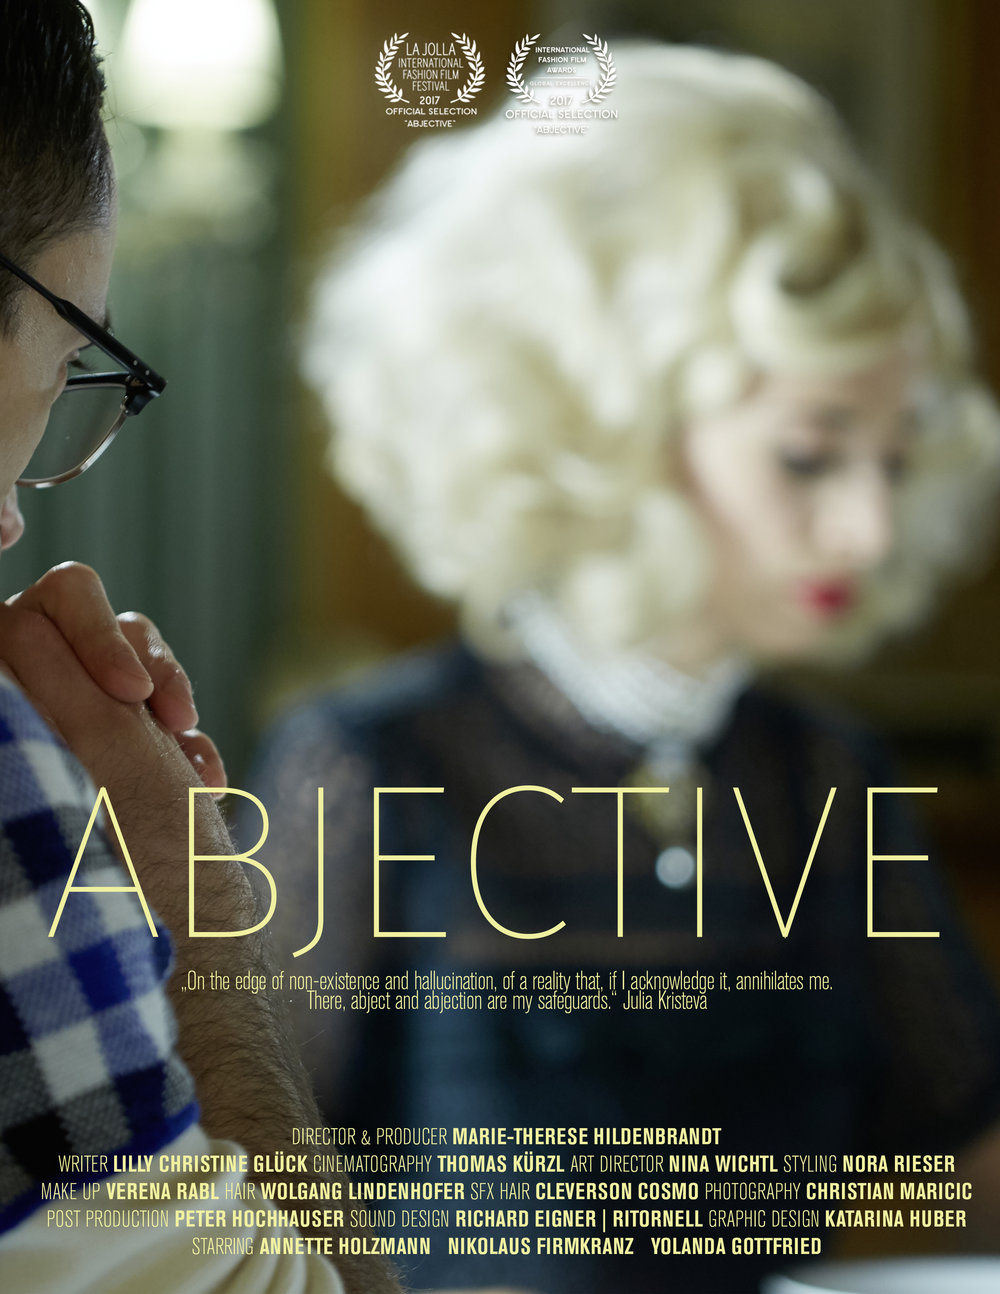 abjective_filmposter_couple_3.jpg